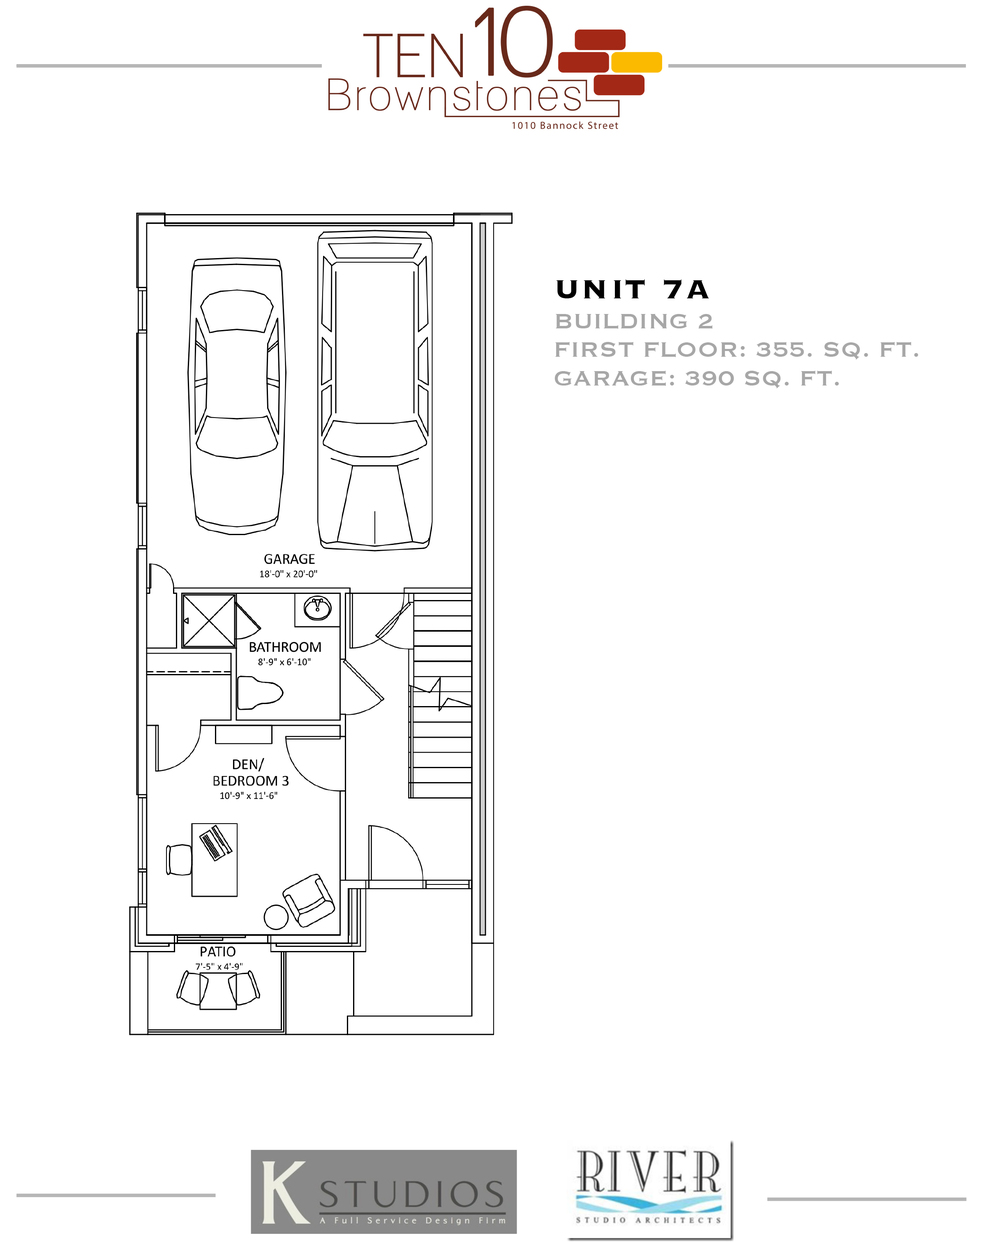 Click image to view & download Unit 7A floor plan